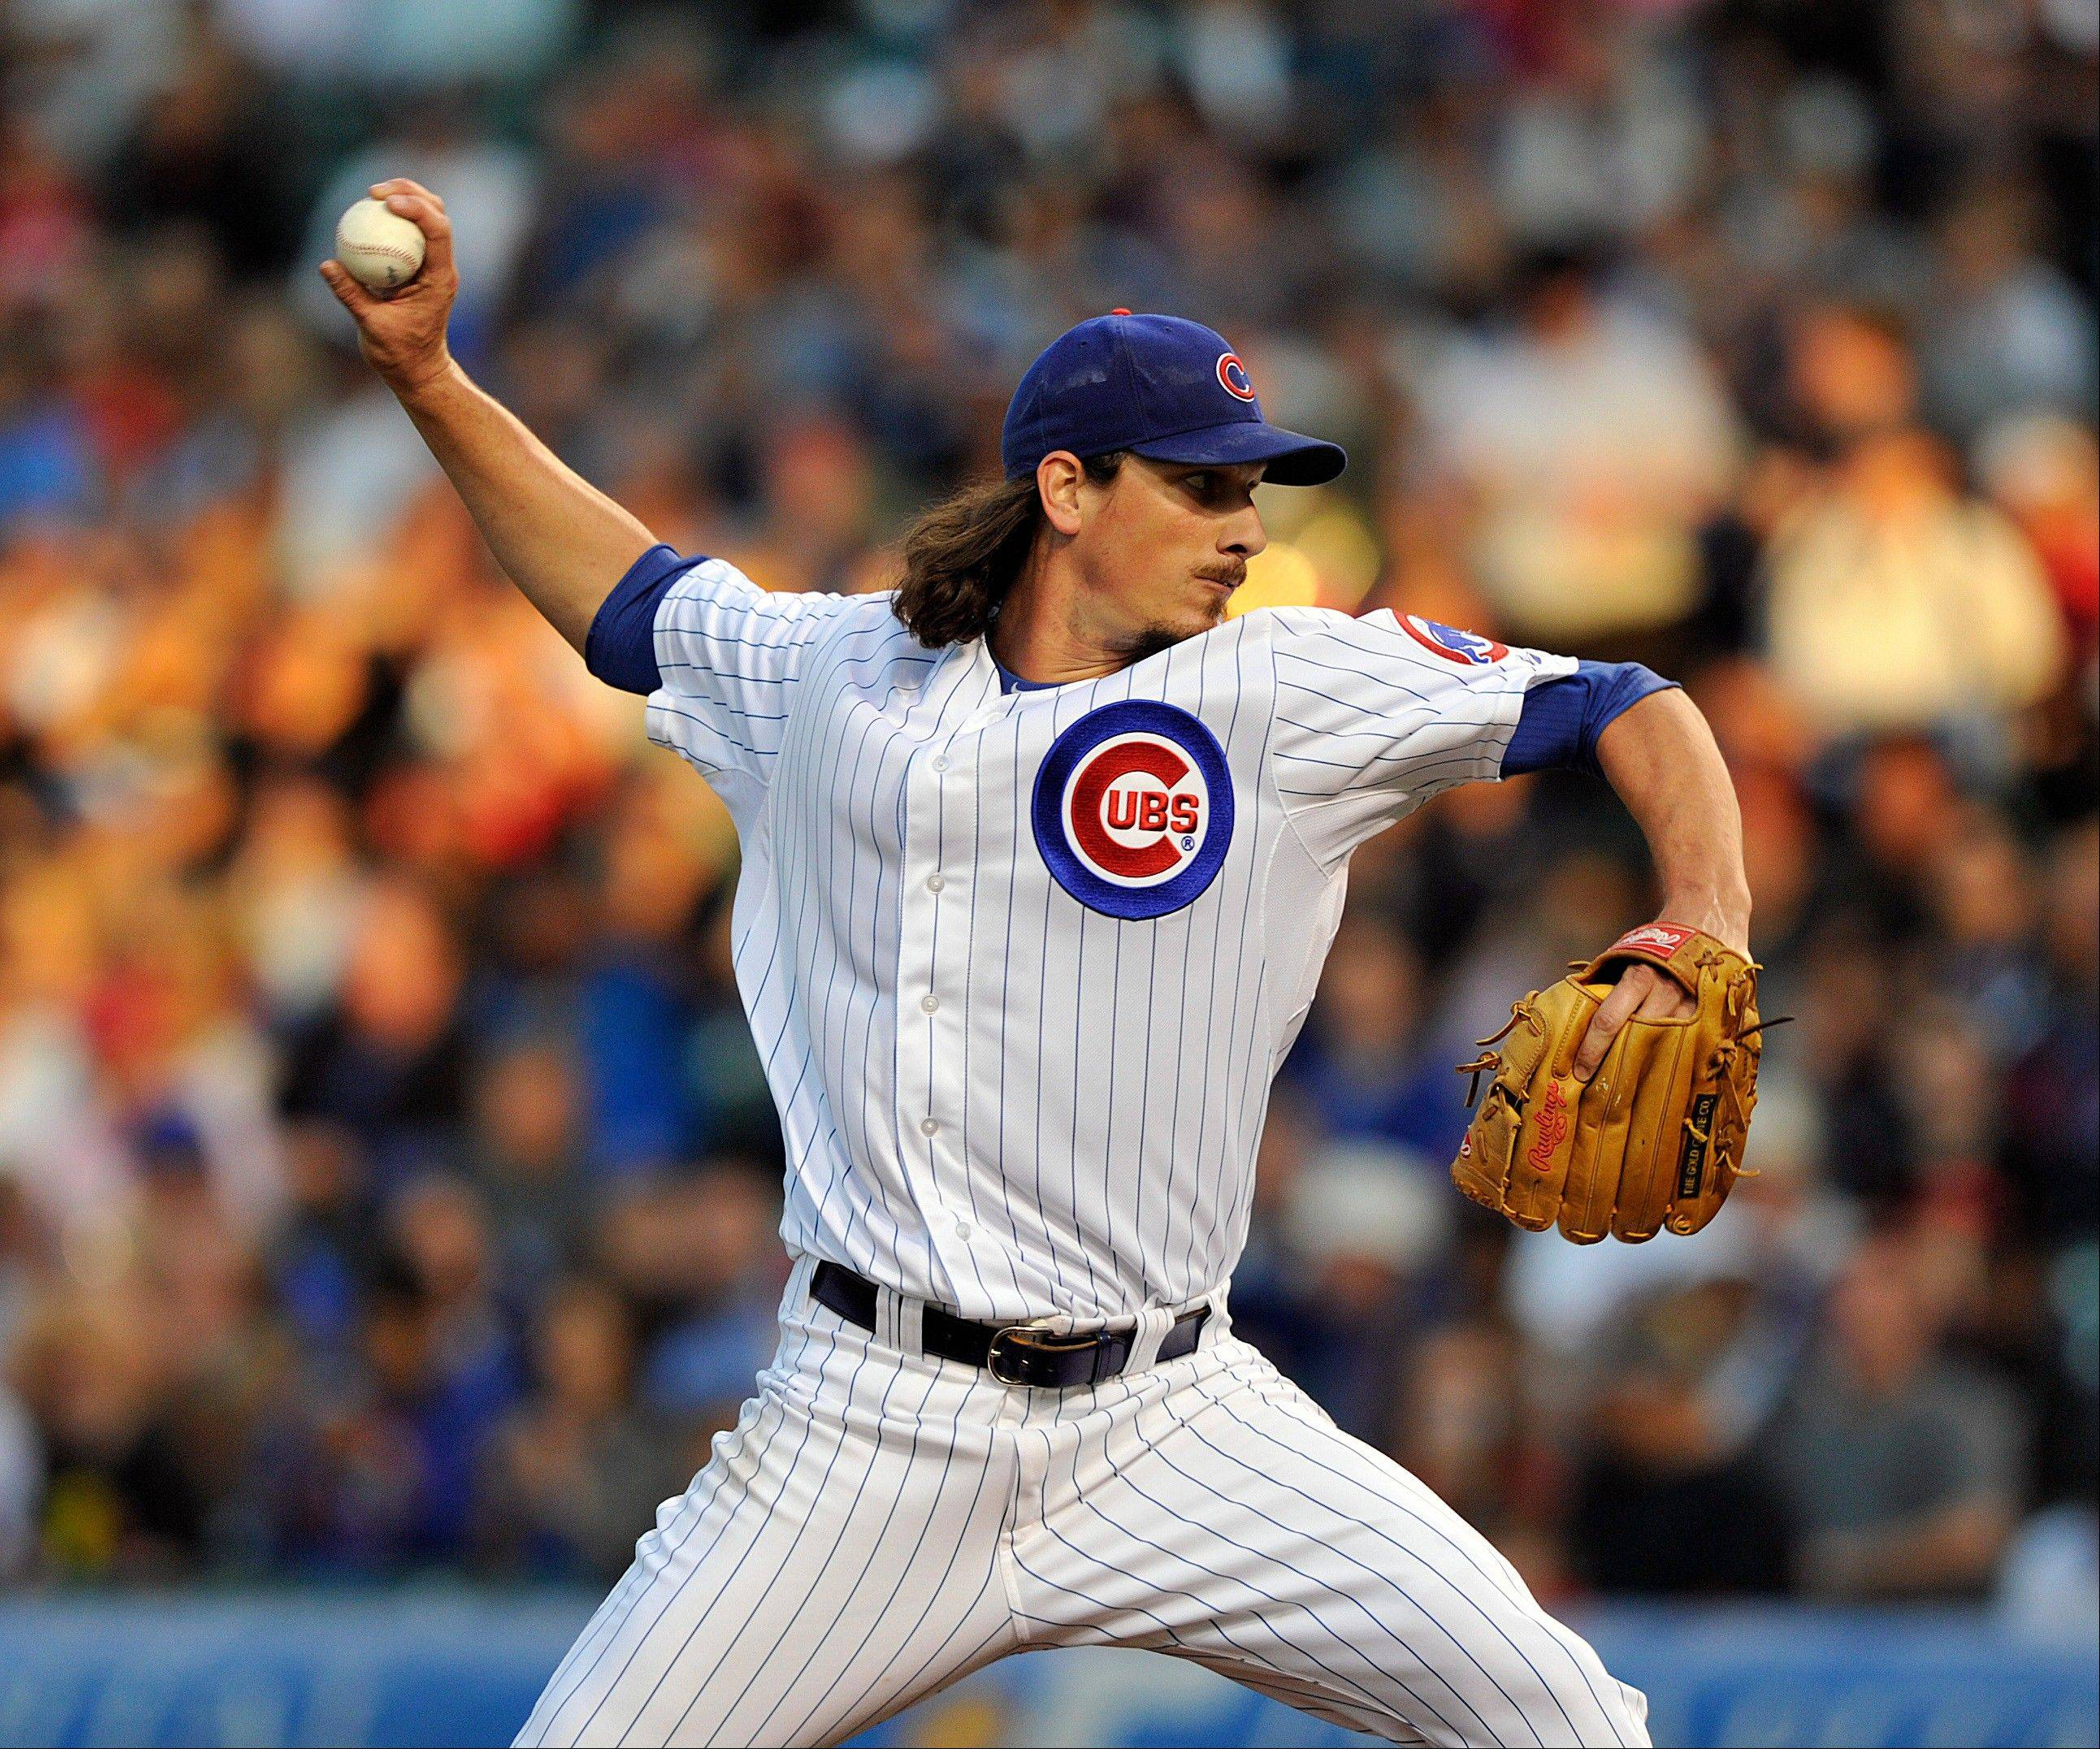 Cubs starter Jeff Samardzija worked 6 innings Tuesday night against the Reds, giving up 4 runs on 6 hits.